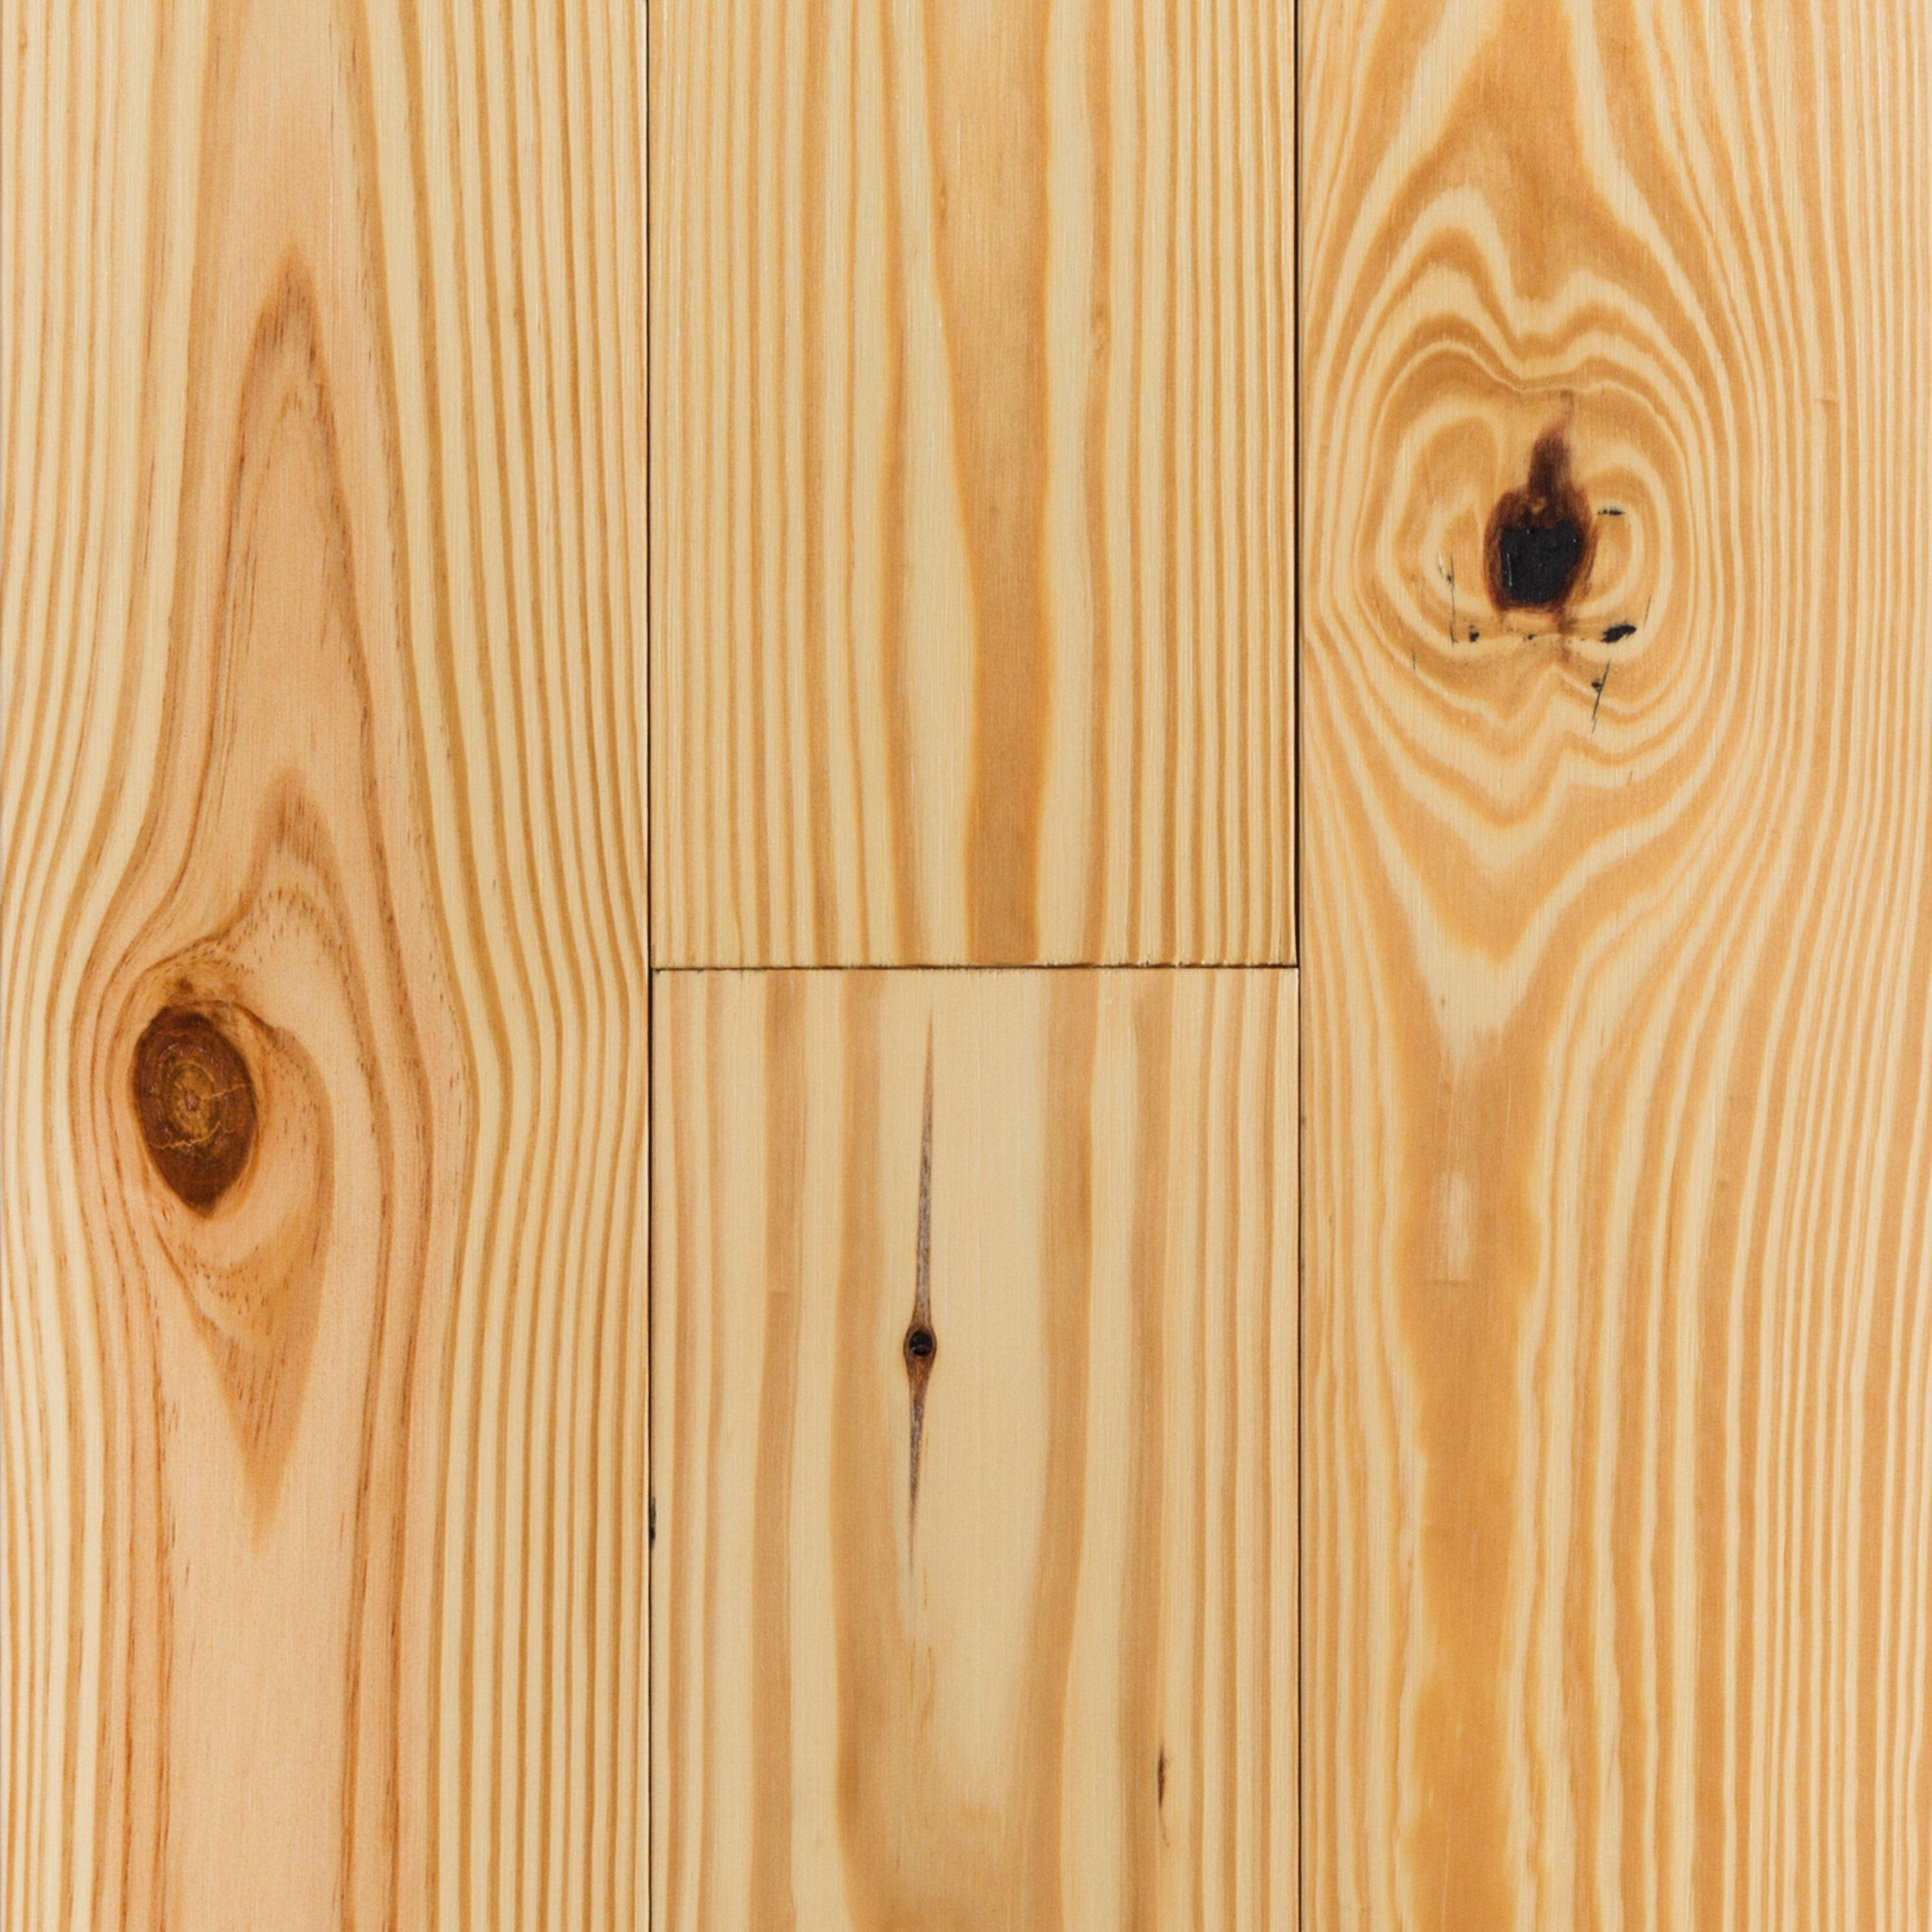 Wired Brushed Pine Flooring In Georgia Trusted Wiring Diagram Jackson Guitar Electric Wire 2 Humbucker 1voluume 1 Tone Solid Hardwood Floor Decor Natural